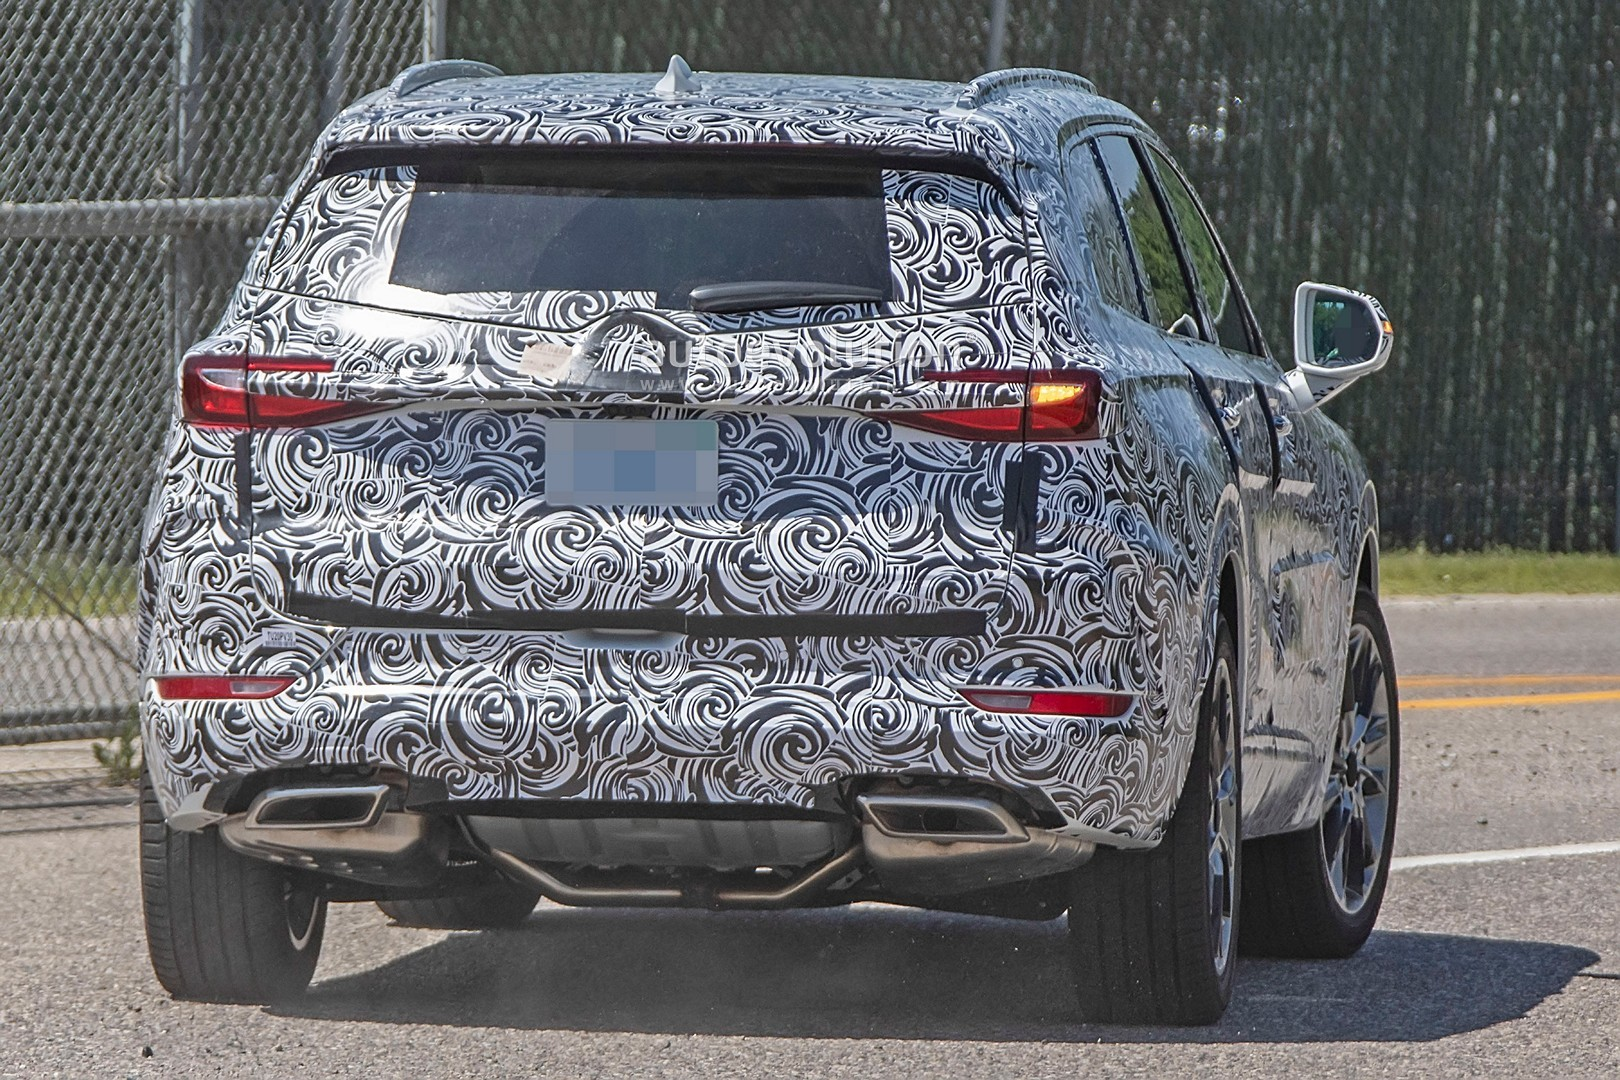 2020 - [Buick] Enspire Buick-spotted-testing-baby-enclave-spied-looks-like-enspire_7